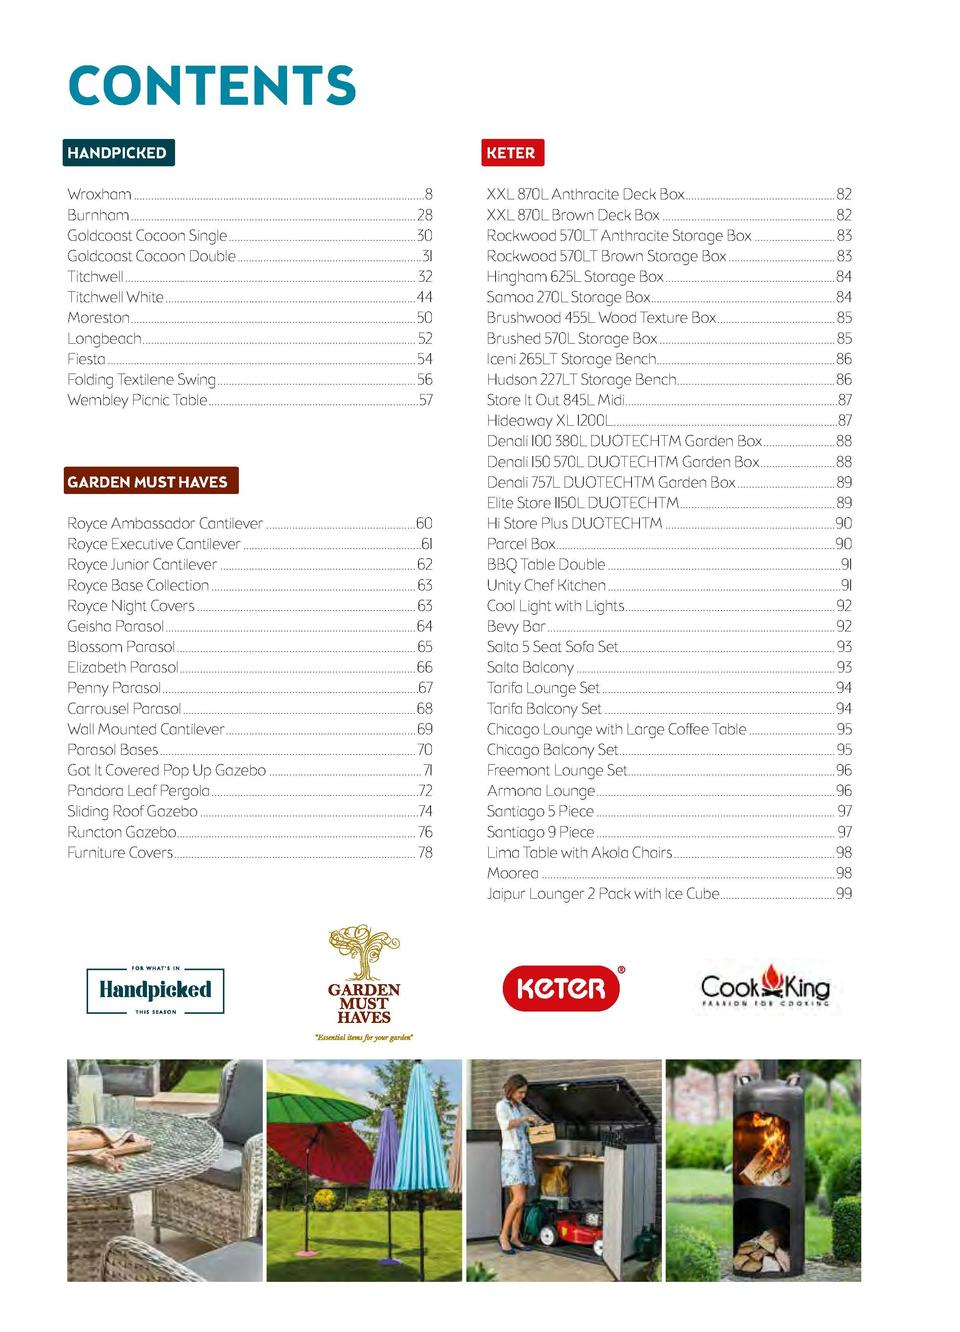 CONTENTS HANDPICKED  KETER  COOK KING  E-COMMERCE  Wroxham...................................................................